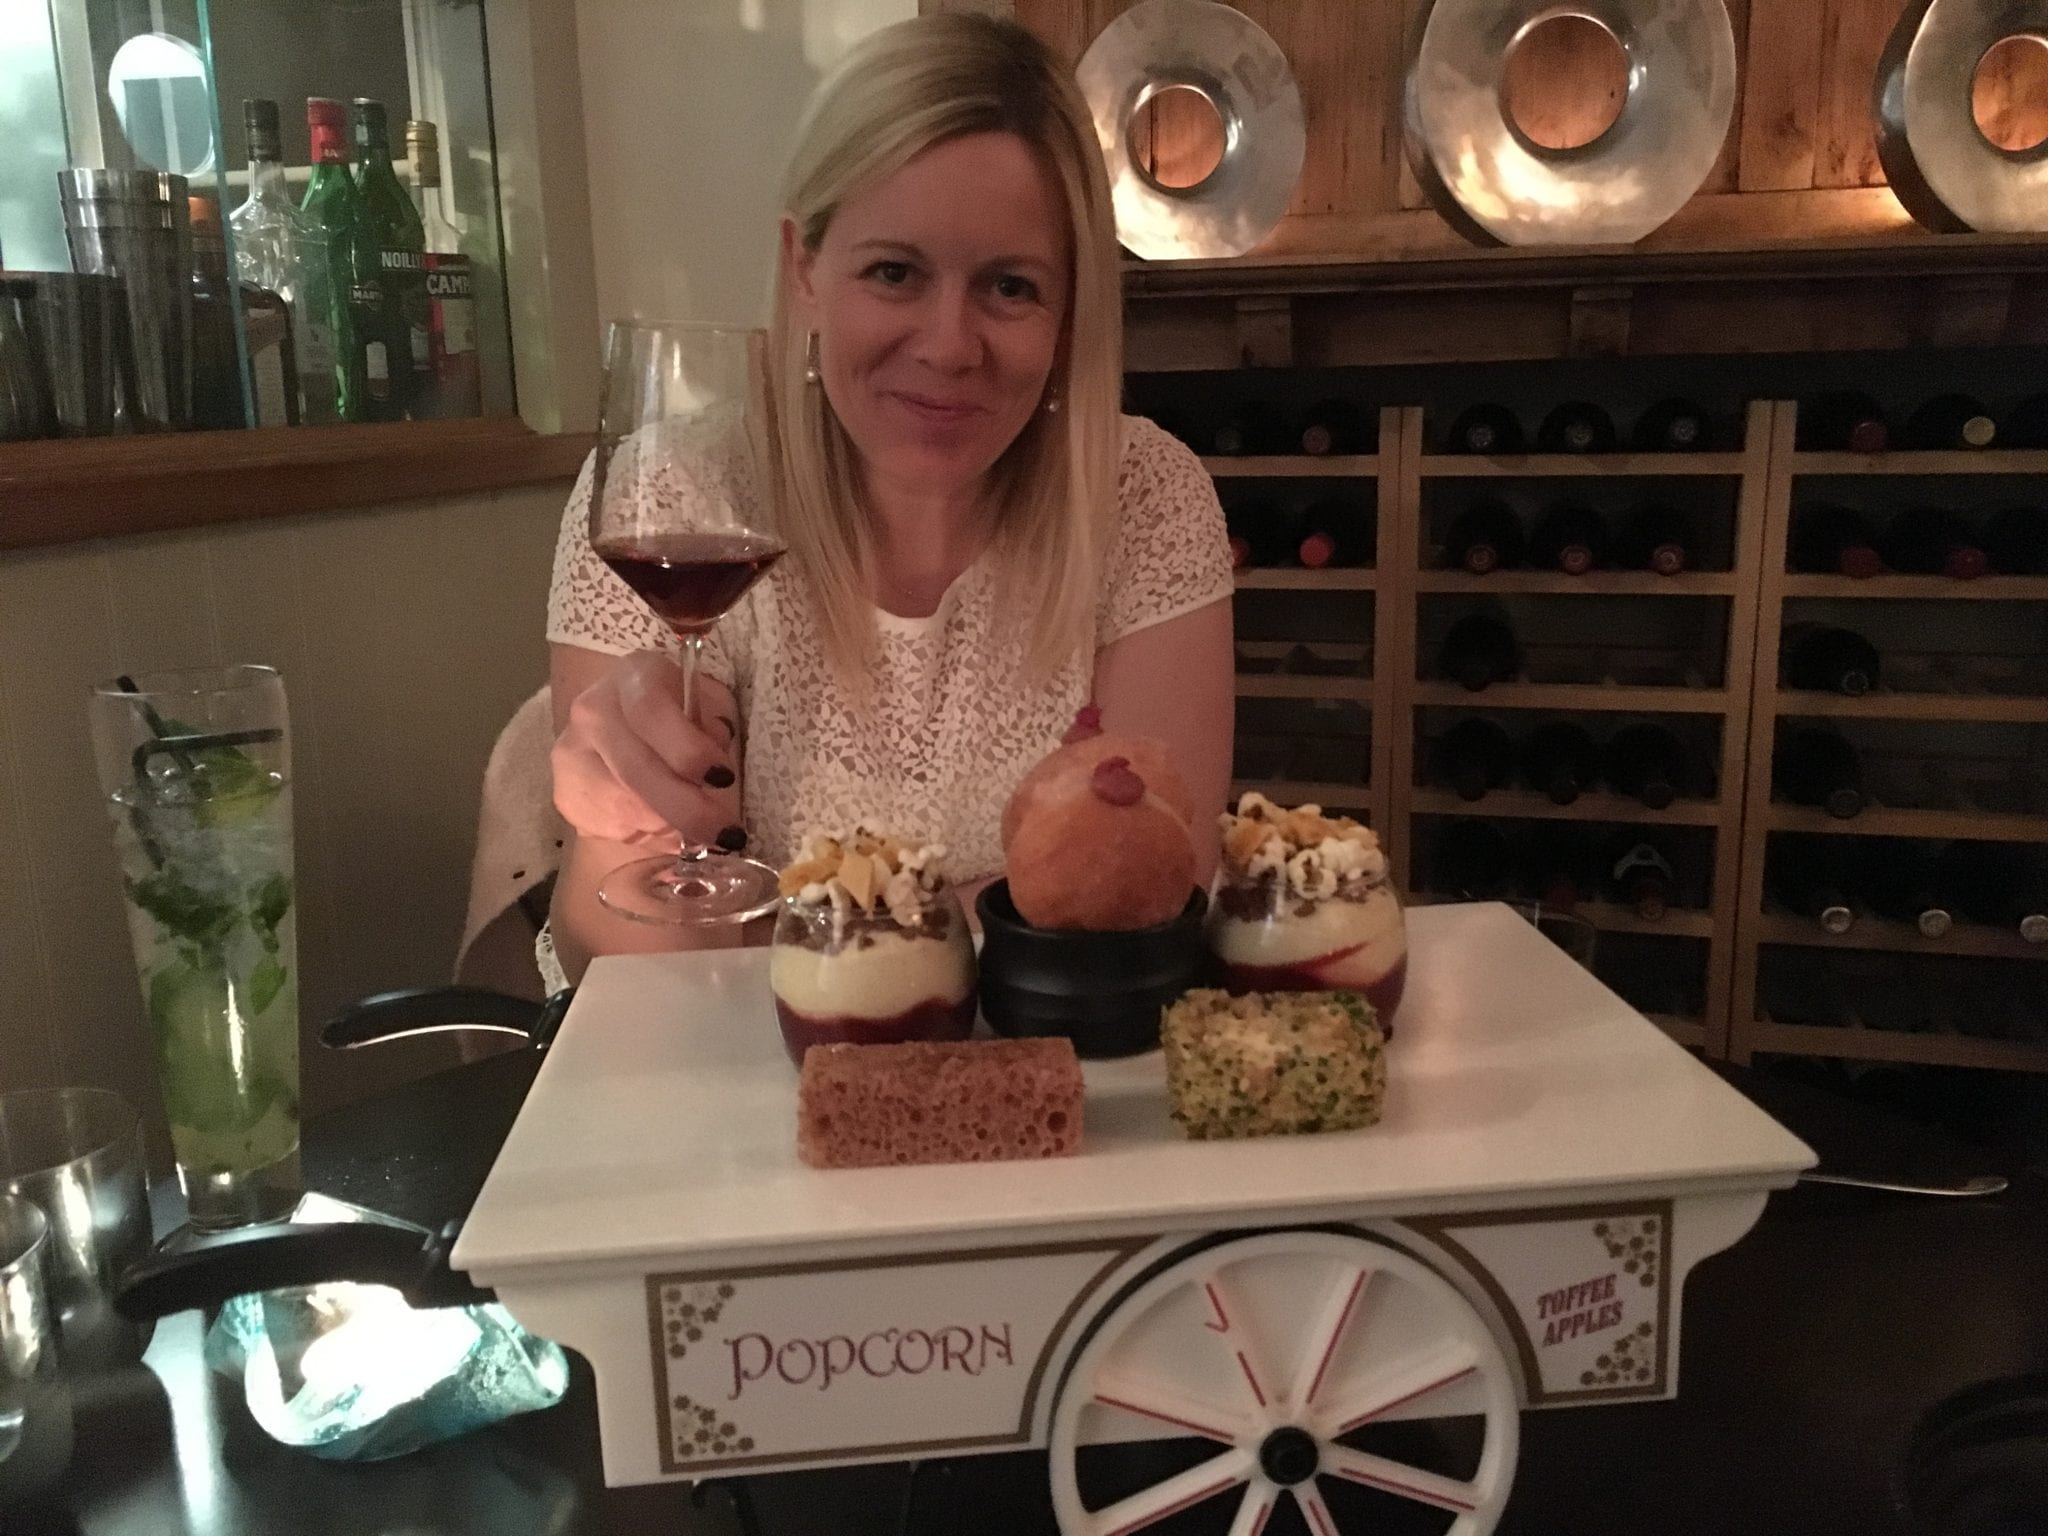 Image of a blonde, smiling woman holding a glass of wine, with a tray of food on the table in front of her.